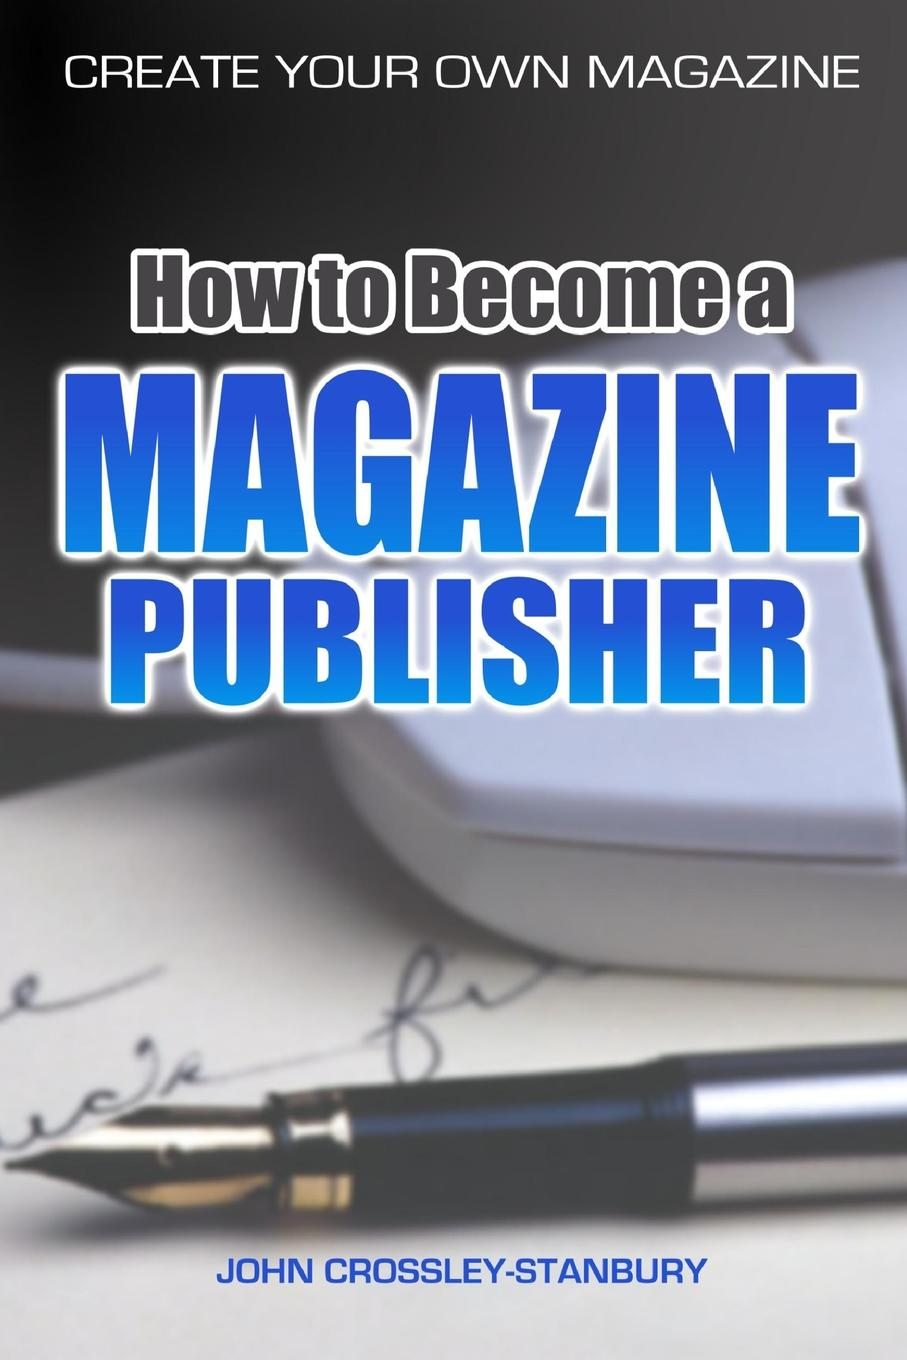 John Crossley-Stanbury How to Become a Magazine Publisher - Create Your Own Magazine magazine v